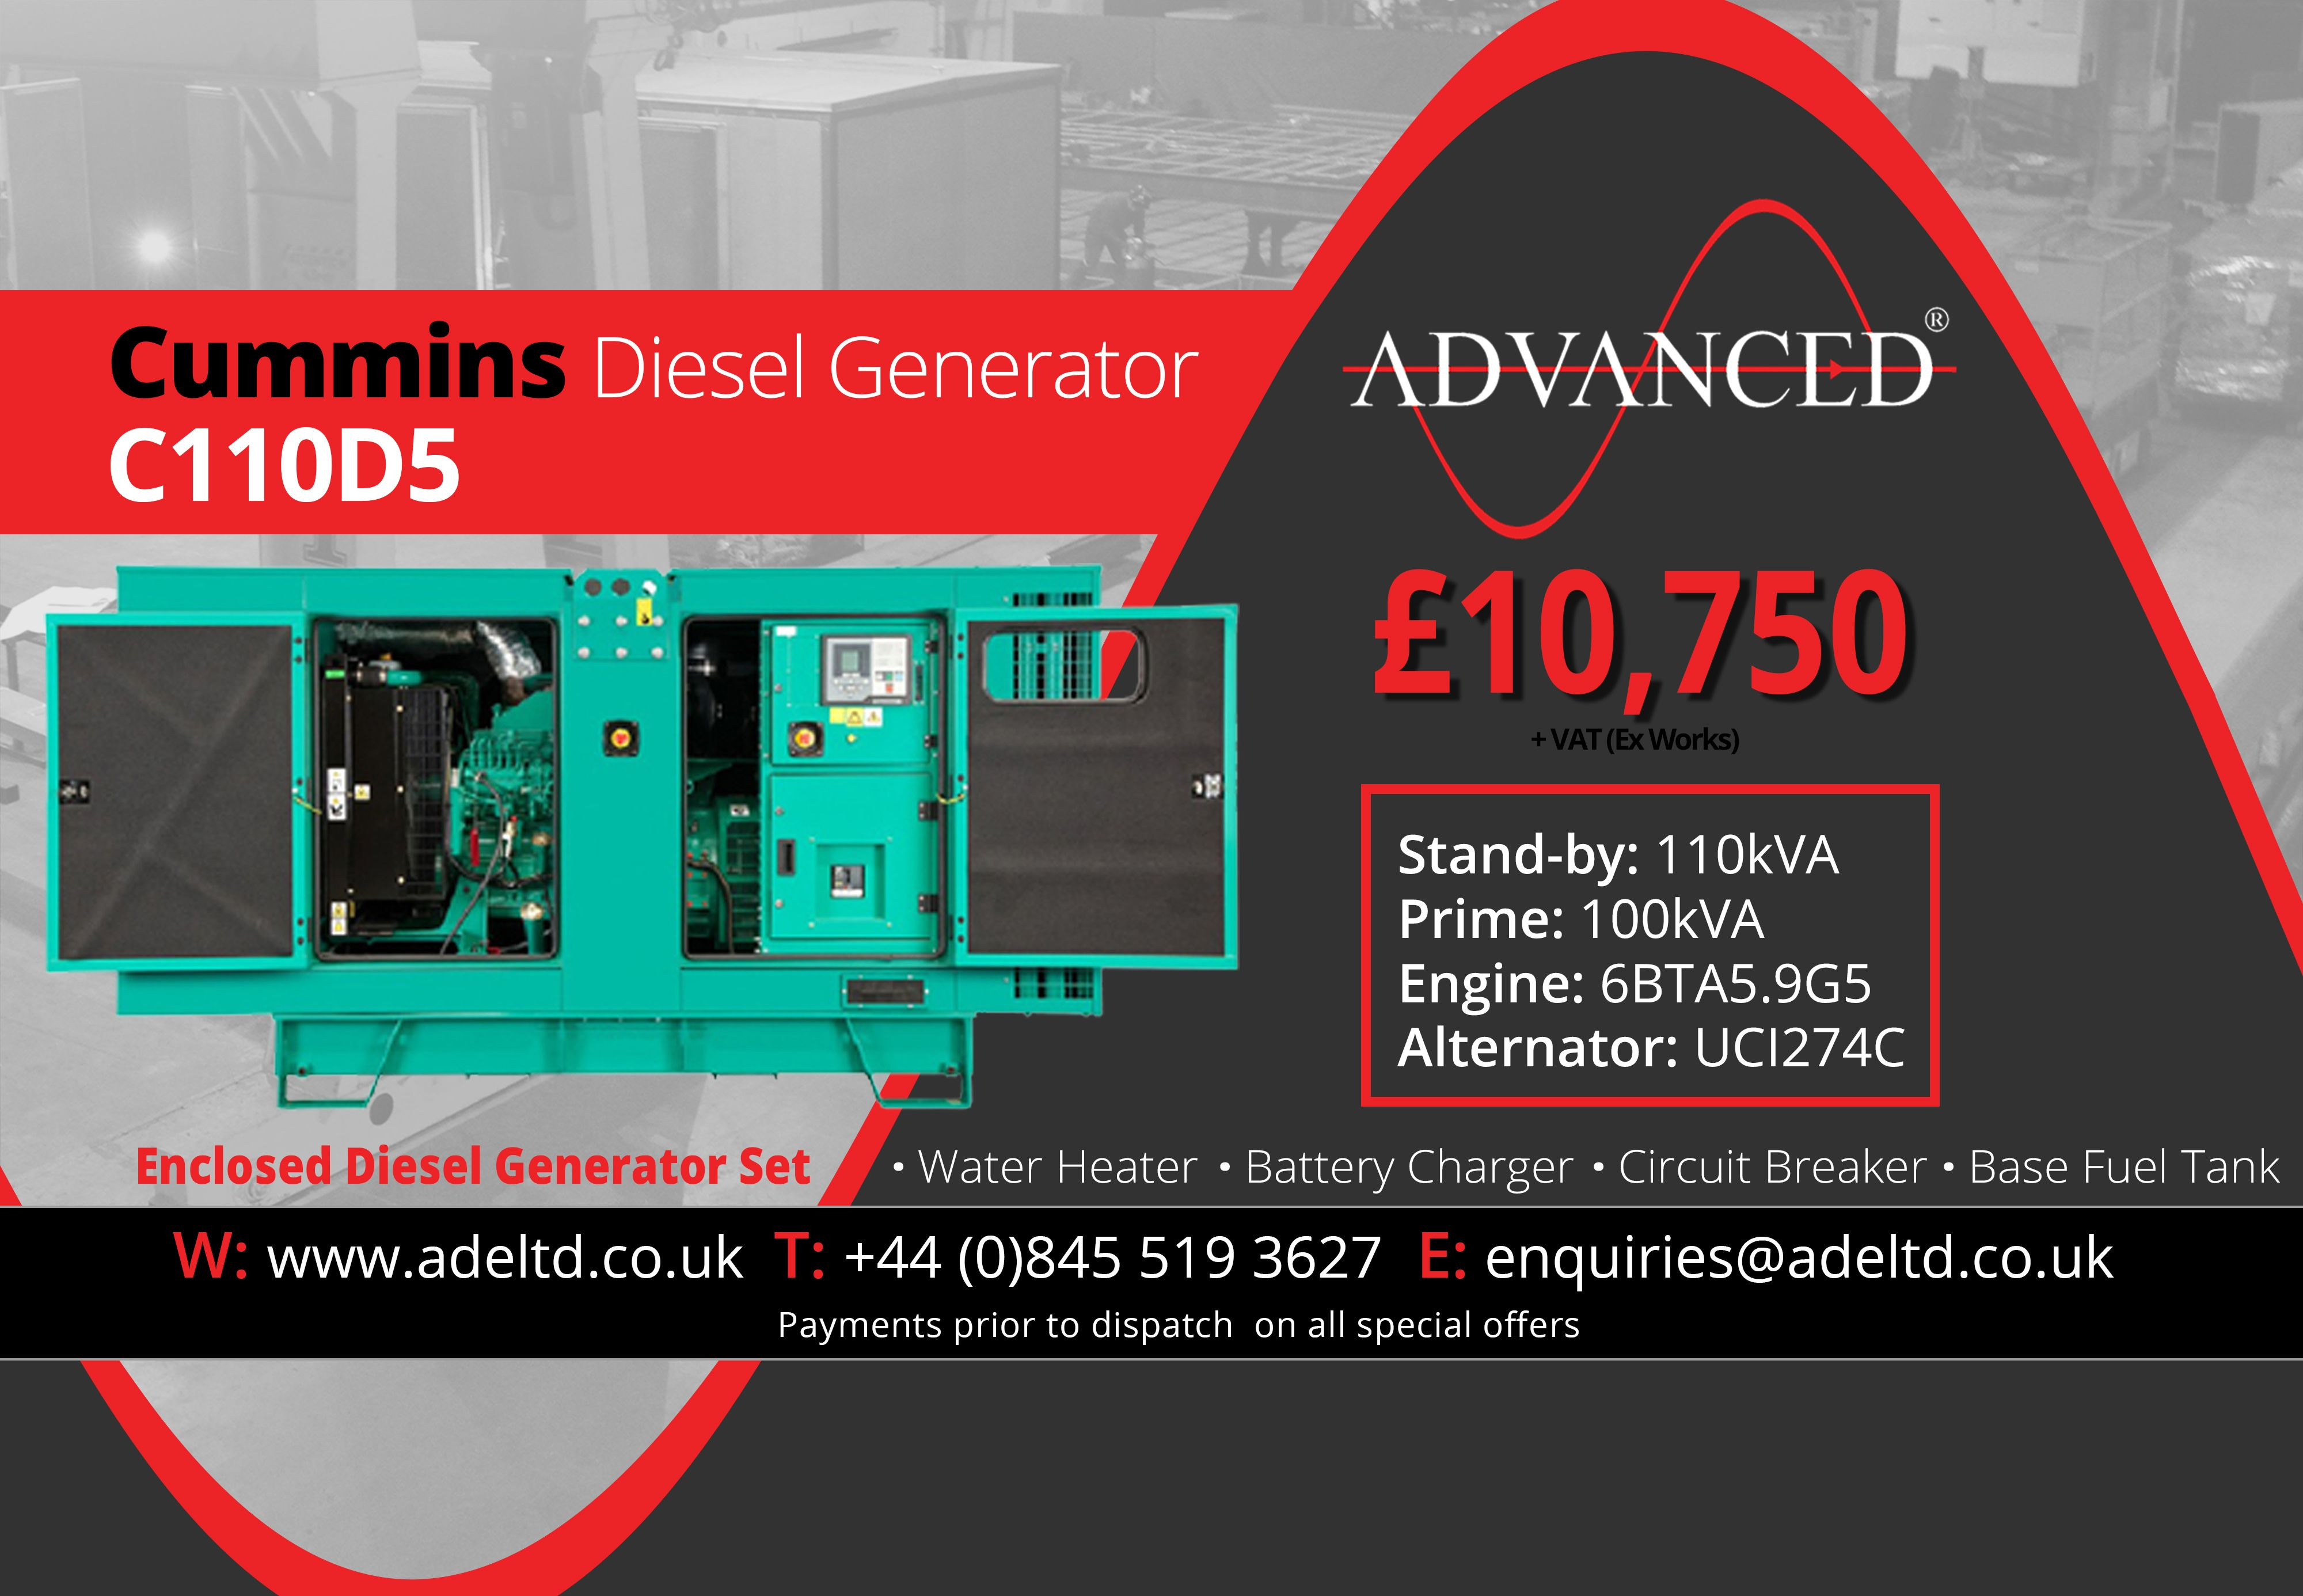 medium resolution of advanced are a leading uk supplier of diesel generators and complete power generation solutions as well as manufacturers of bespoke generator enclosures